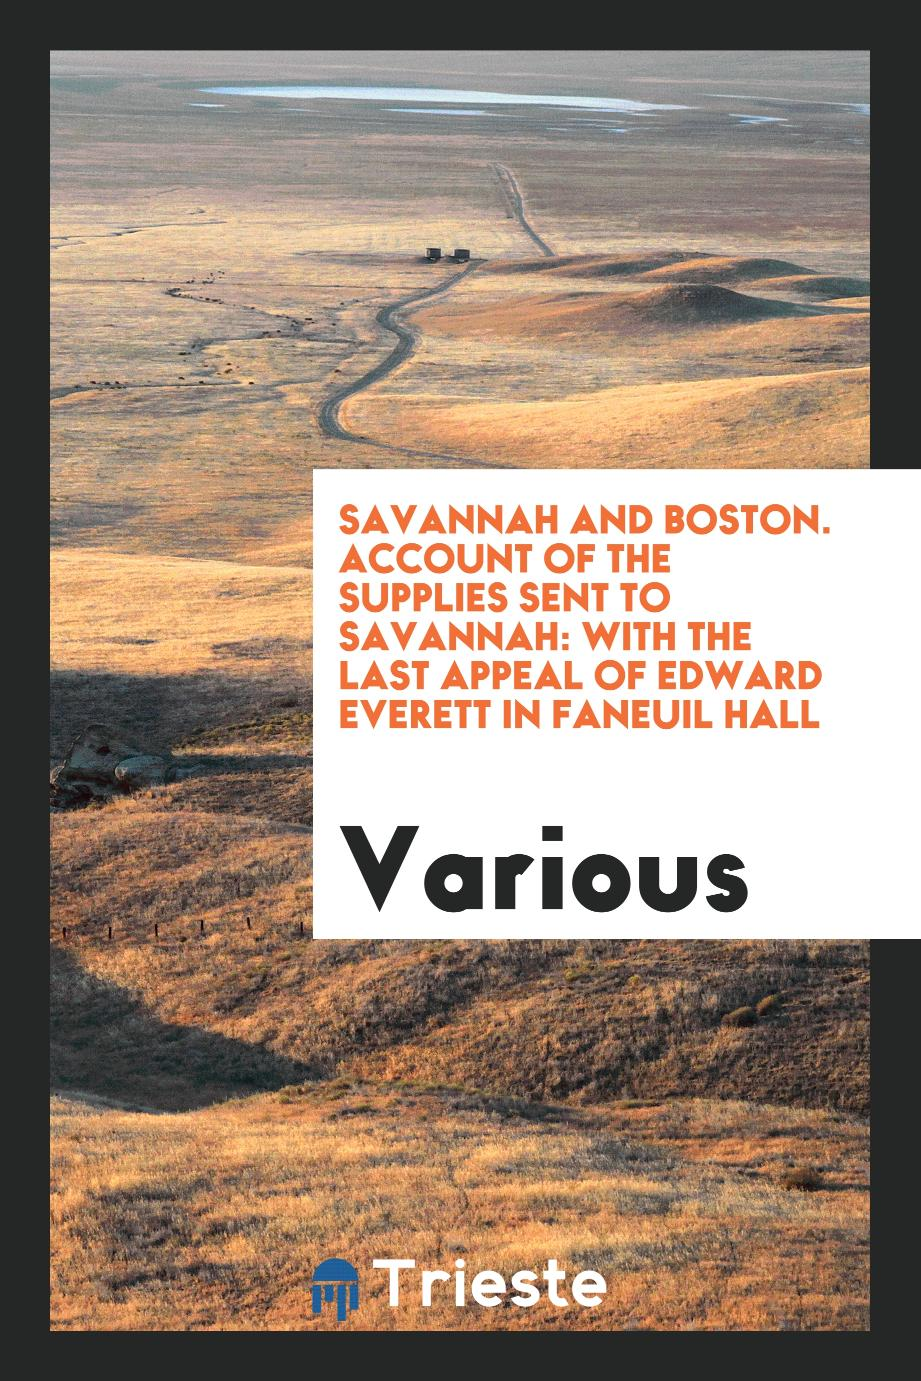 Savannah and Boston. Account of the supplies sent to Savannah: with the last appeal of Edward Everett in Faneuil hall